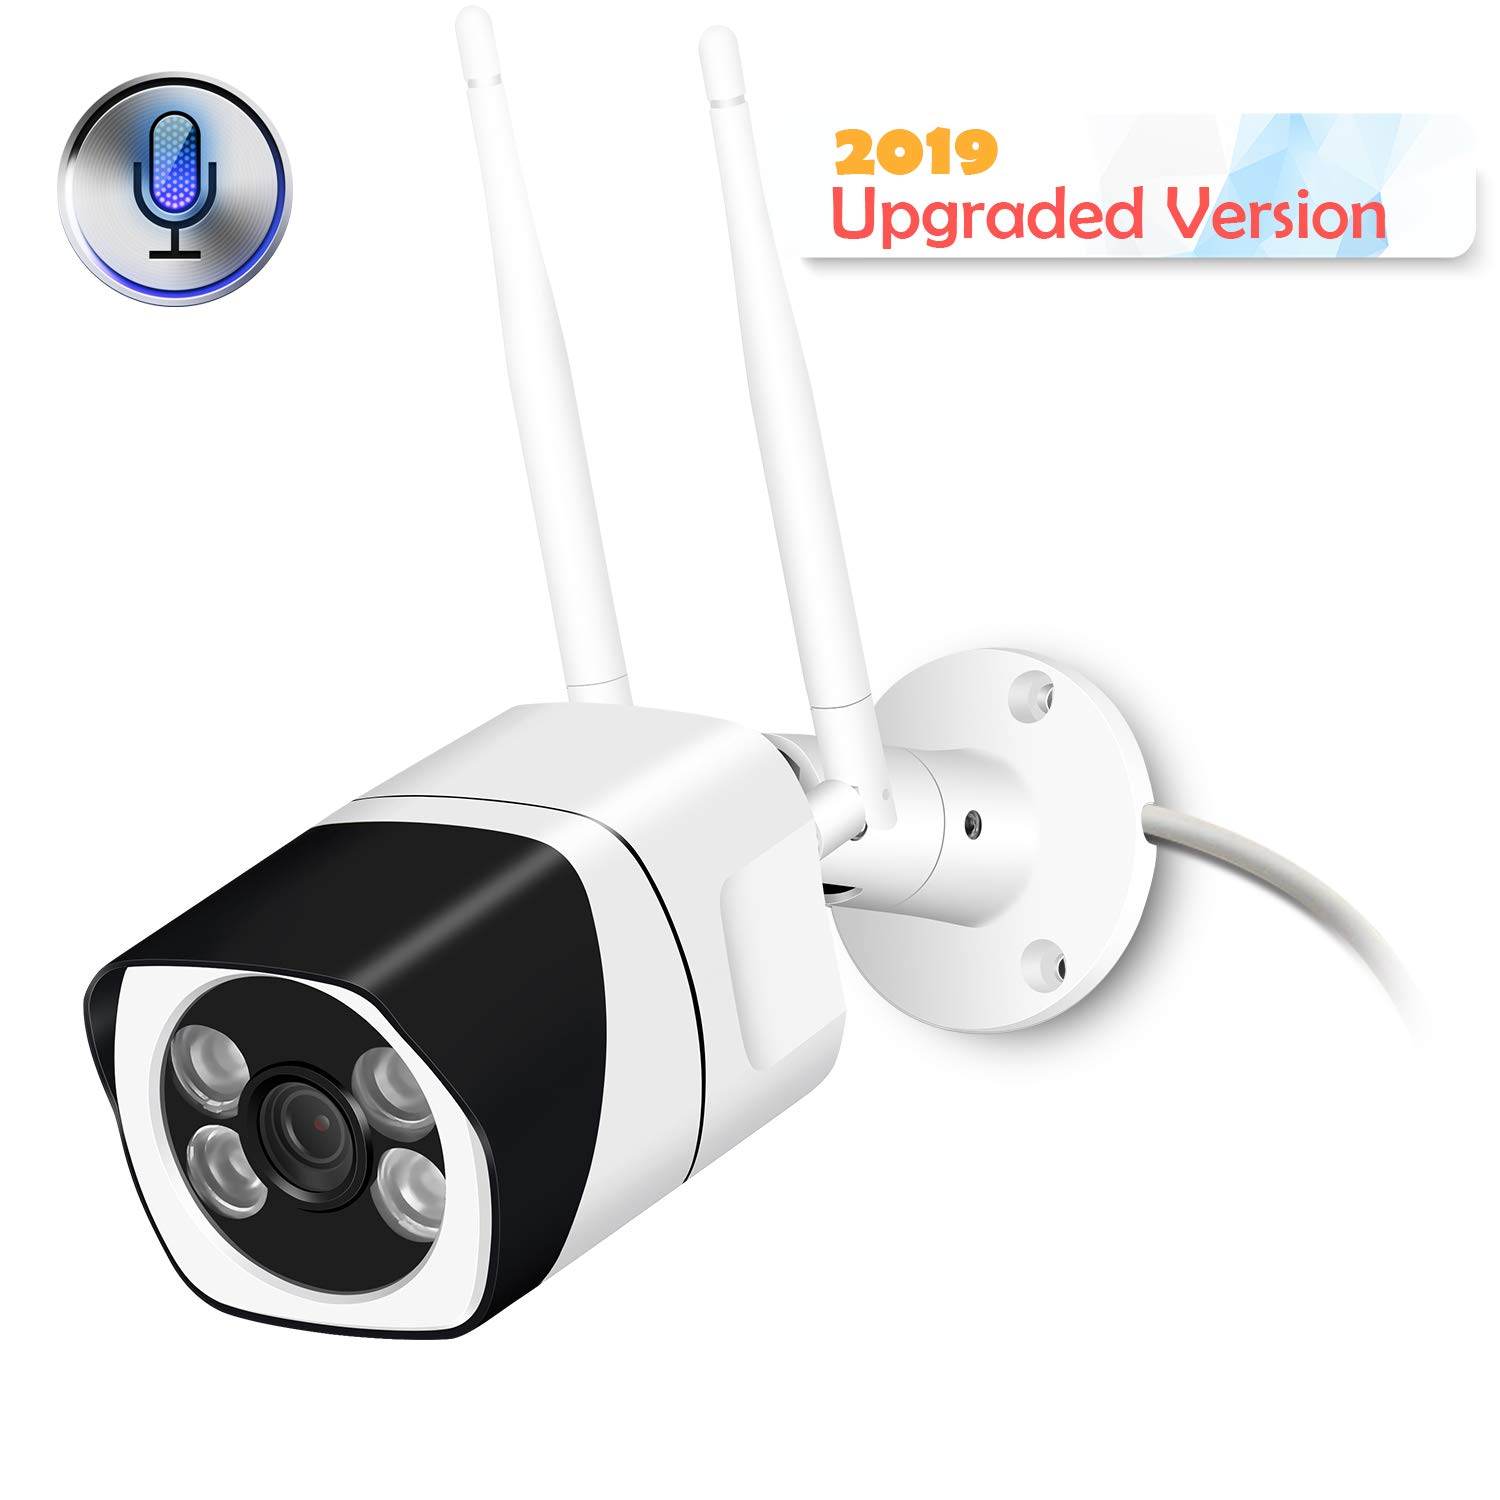 Outdoor WiFi Security Camera, 1080P Wireless IP Camera Two Way Audio Motion Detection Remote Viewing FTP Onvif Night Vision IP66 Waterproof Bullet Surveillance Cam Support Max 128G SD Card(NO Card)